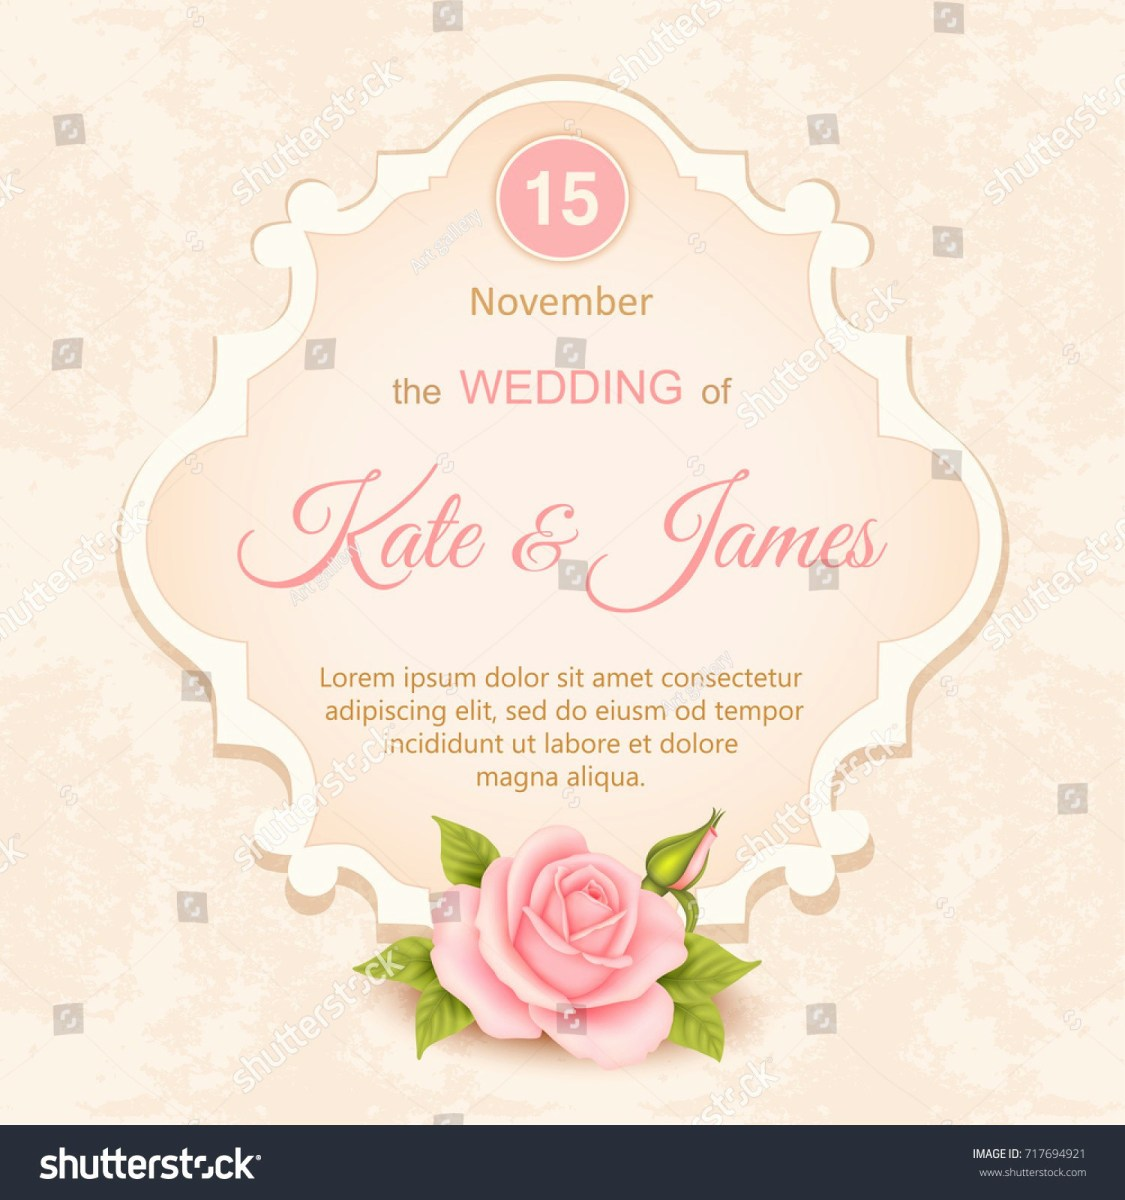 Free Printable Wedding Invitation Templates Download Lego Invitation Template Free Download Valid Free Printable Wedding